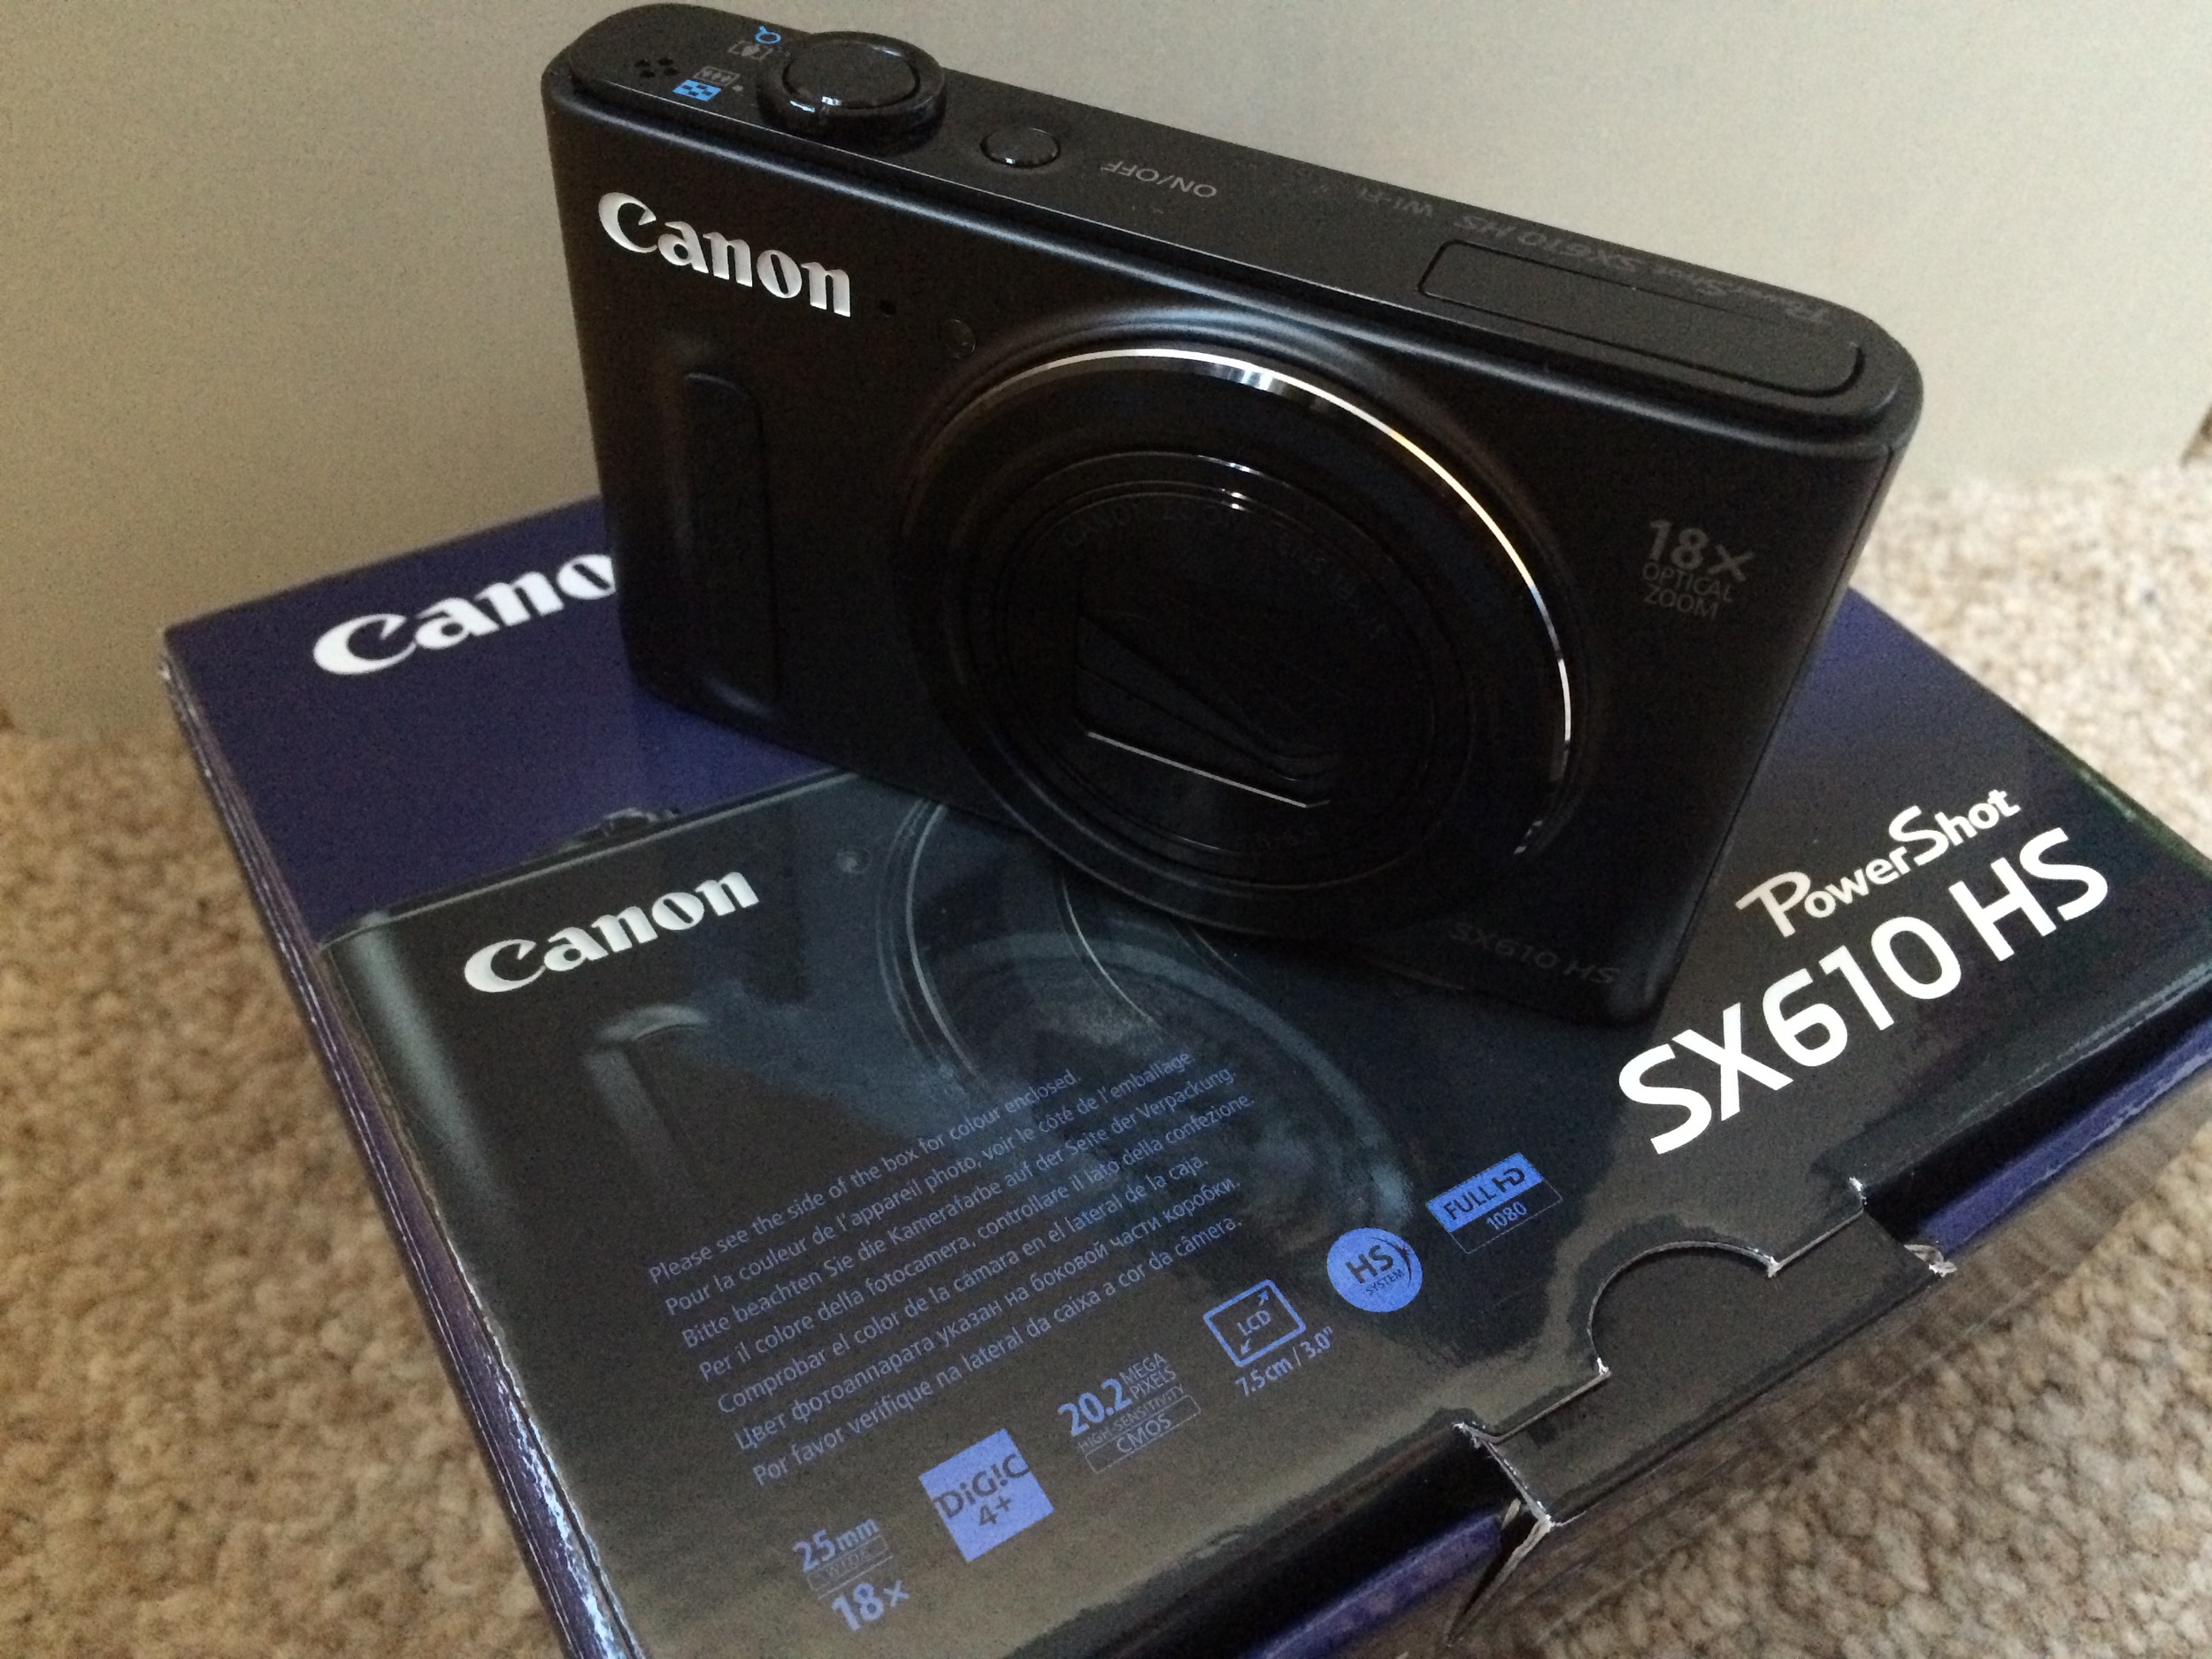 It may not be the S110 or the S120, but the Canon PowerShot SX610 HS seemed like a great alternative.